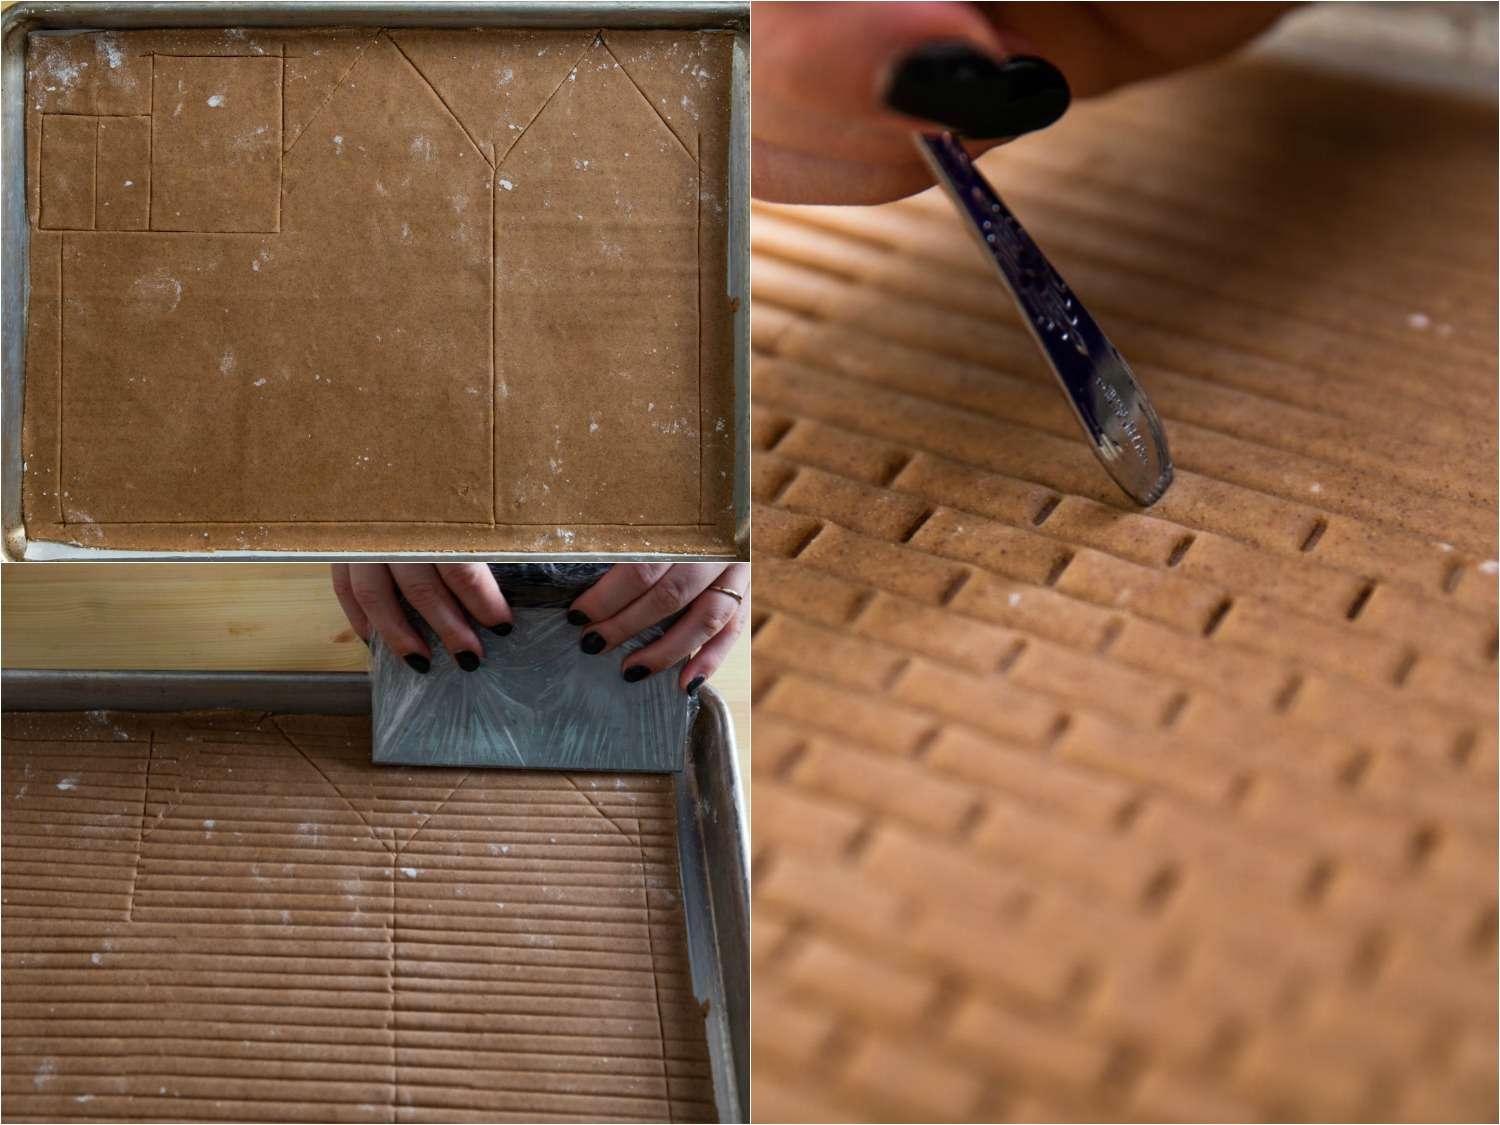 Collage of making walls for gingerbread house: wall cutouts in a tray of gingerbread, using a bench scraper to make rows of bricks, using the end of a spoon handle to create individual bricks